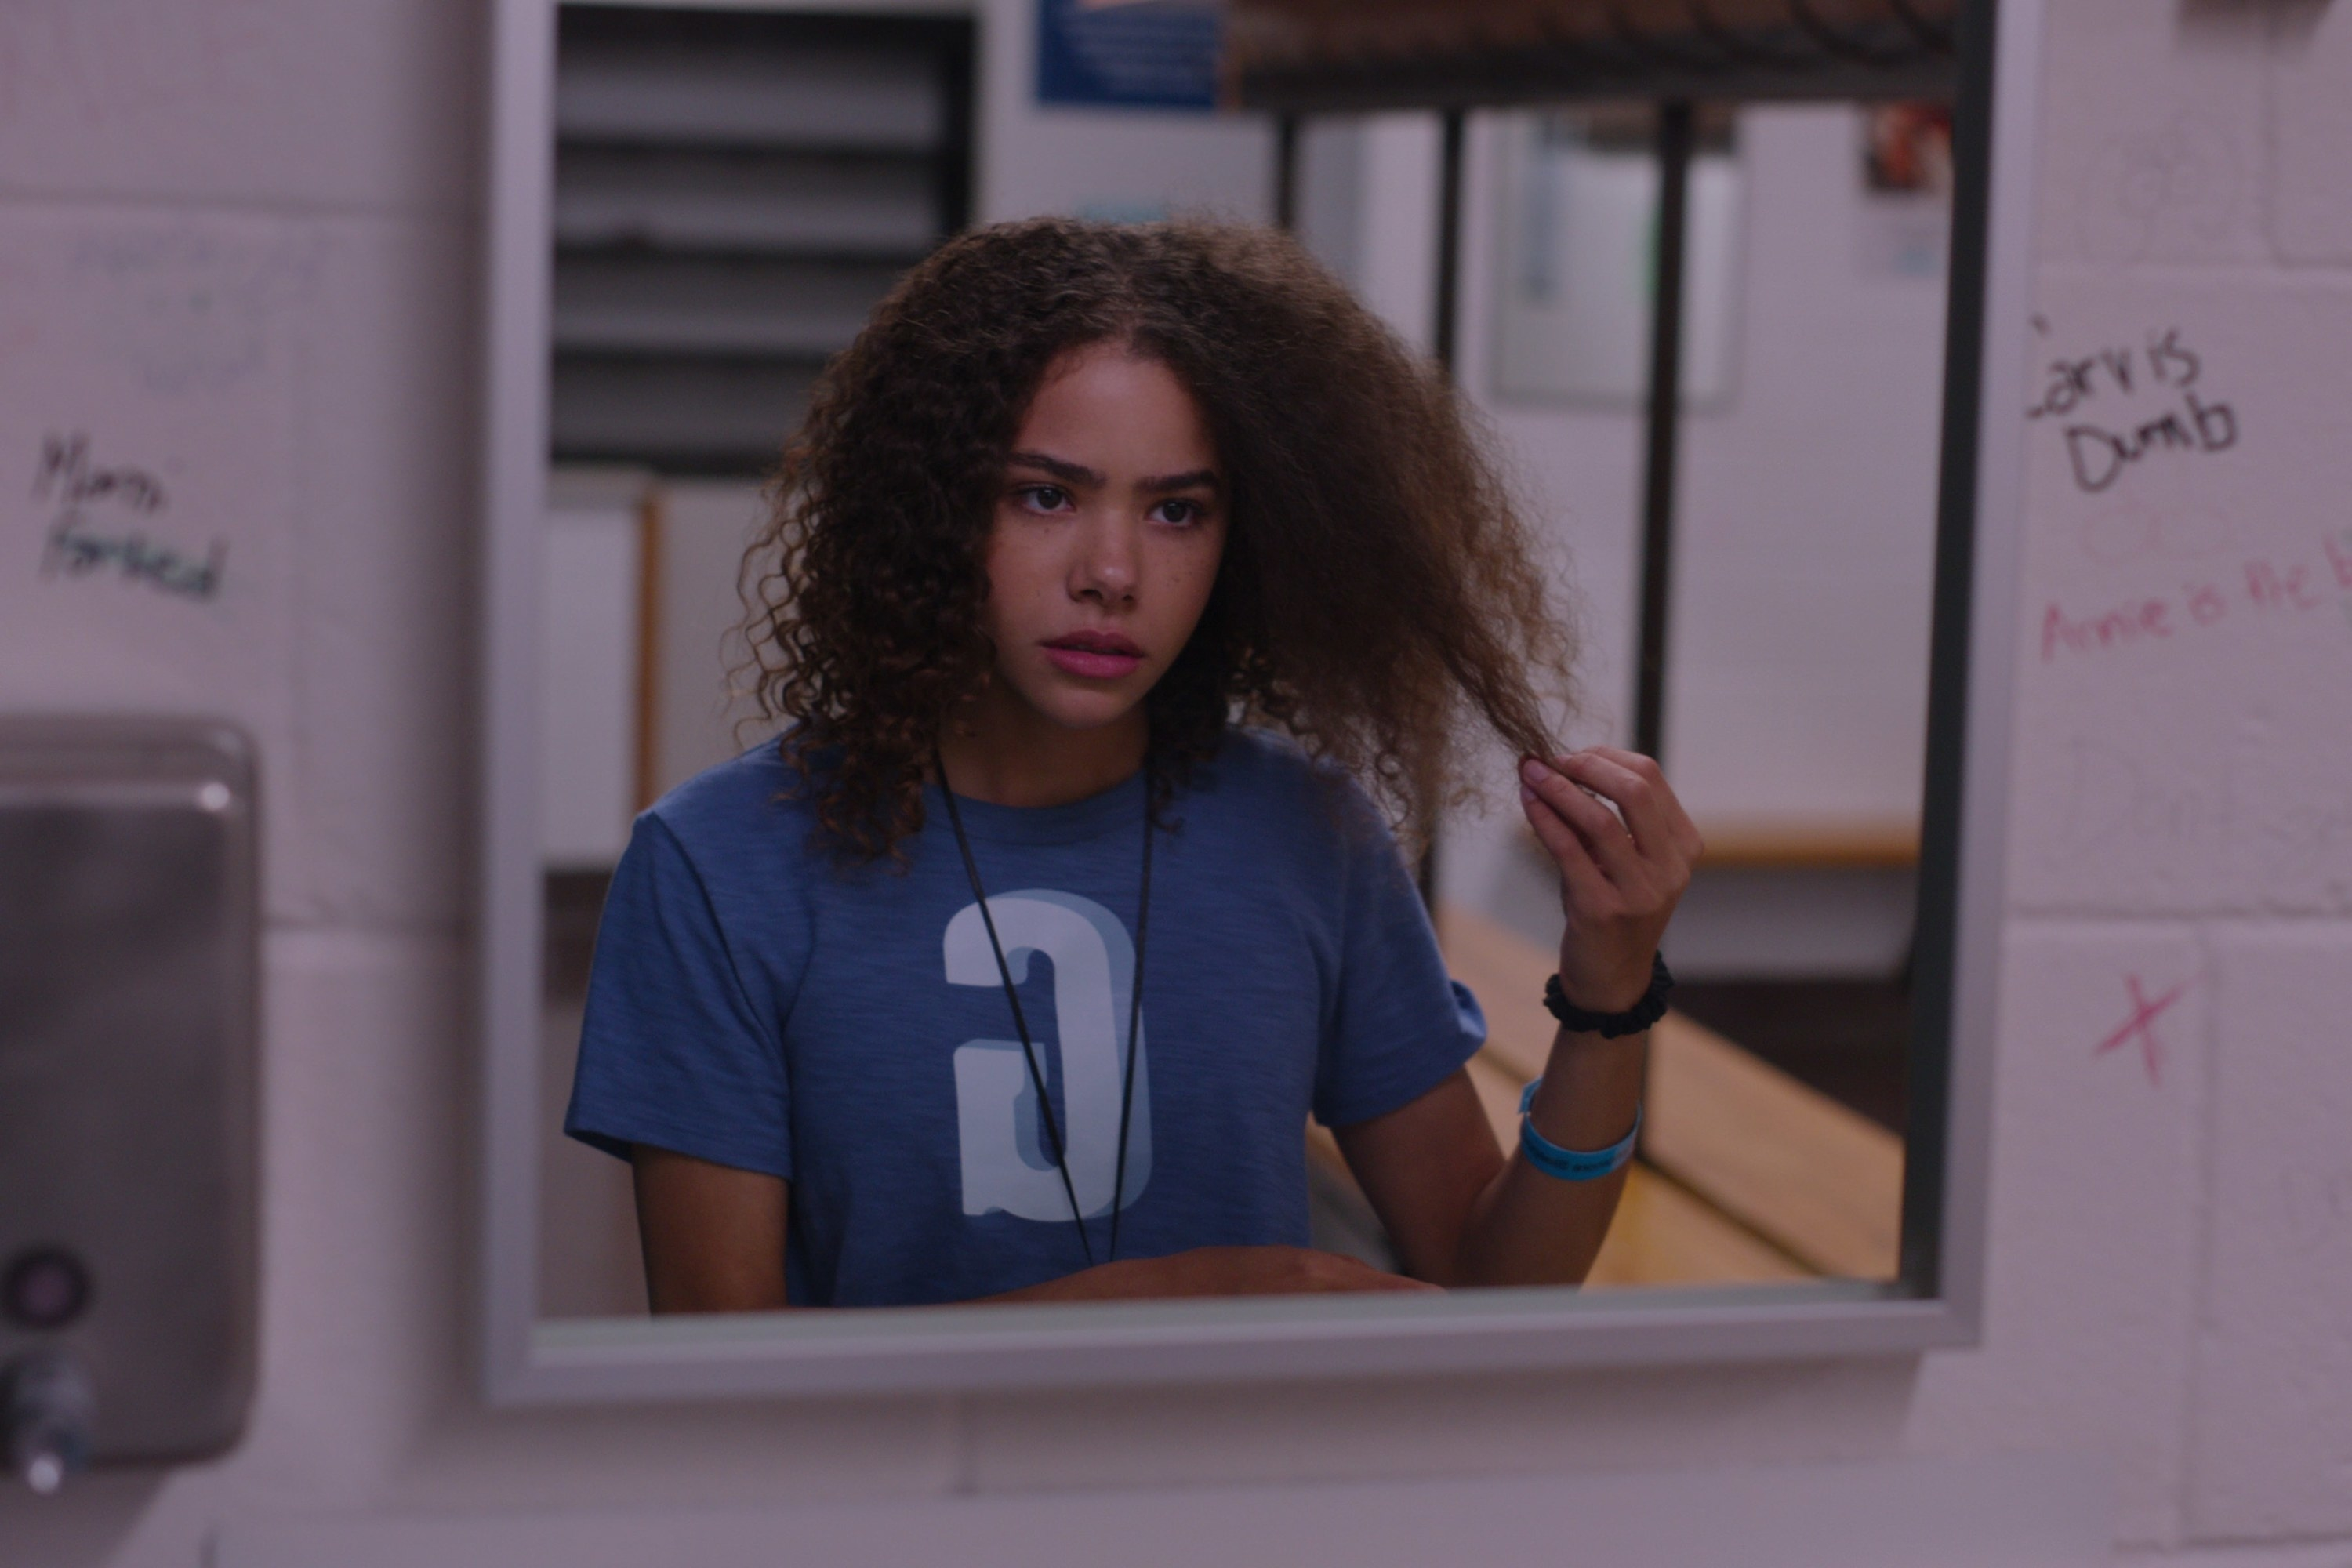 Ginny pulls at her curly hair in the mirror